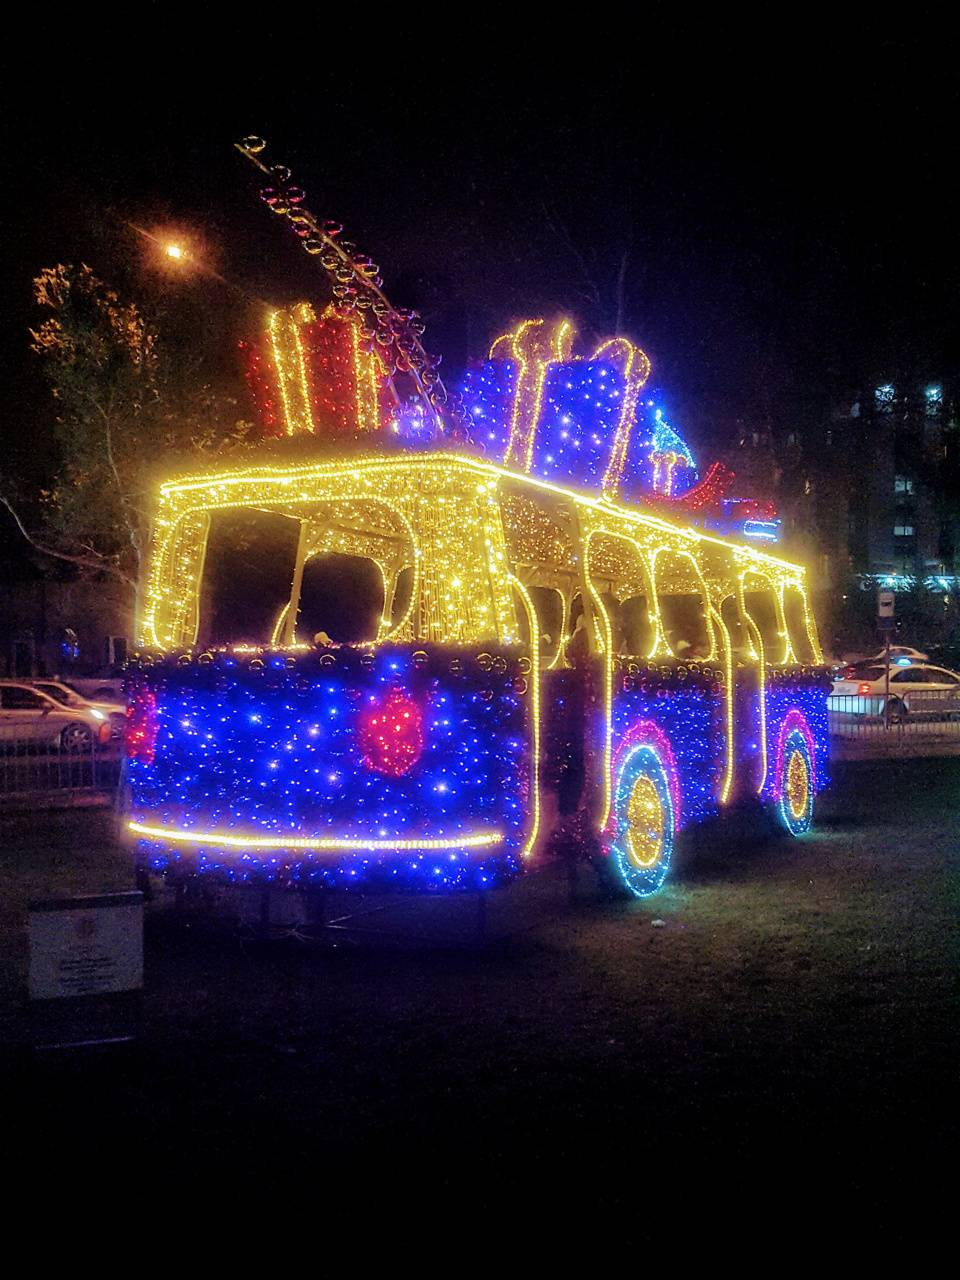 New year bus